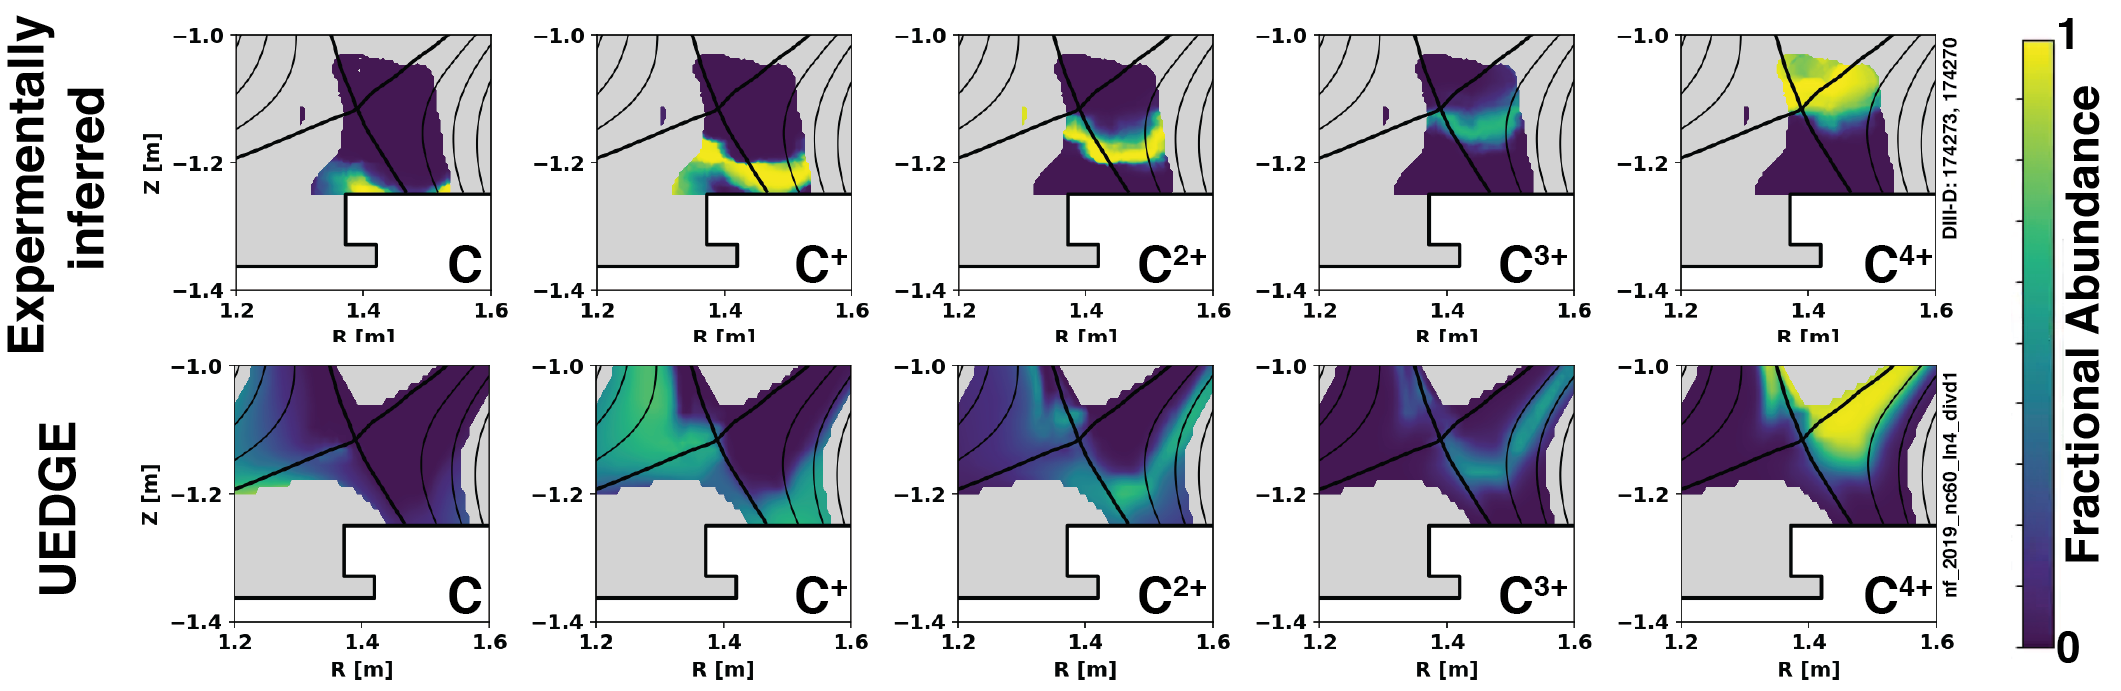 Comparison of relative carbon impurity charge states in a detached open divertor showing similar charge-state composition throughout the detachment front in both experimentally inferred and simulated abundancies.